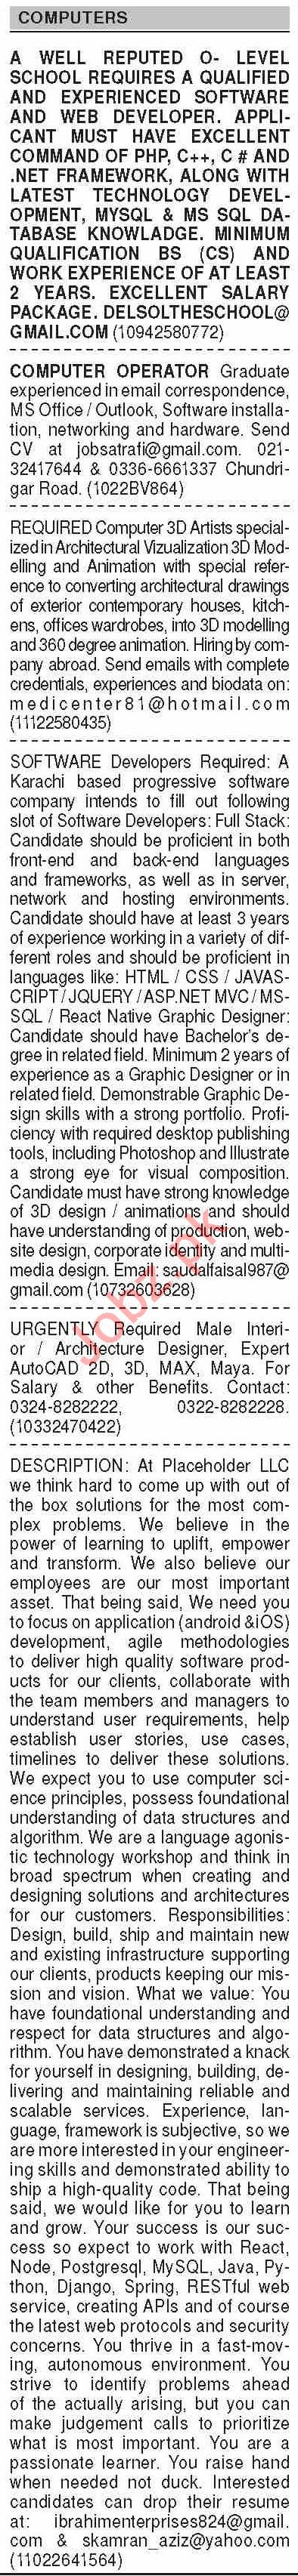 Dawn Sunday Classified Ads 23 Aug 2020 for Computer Staff